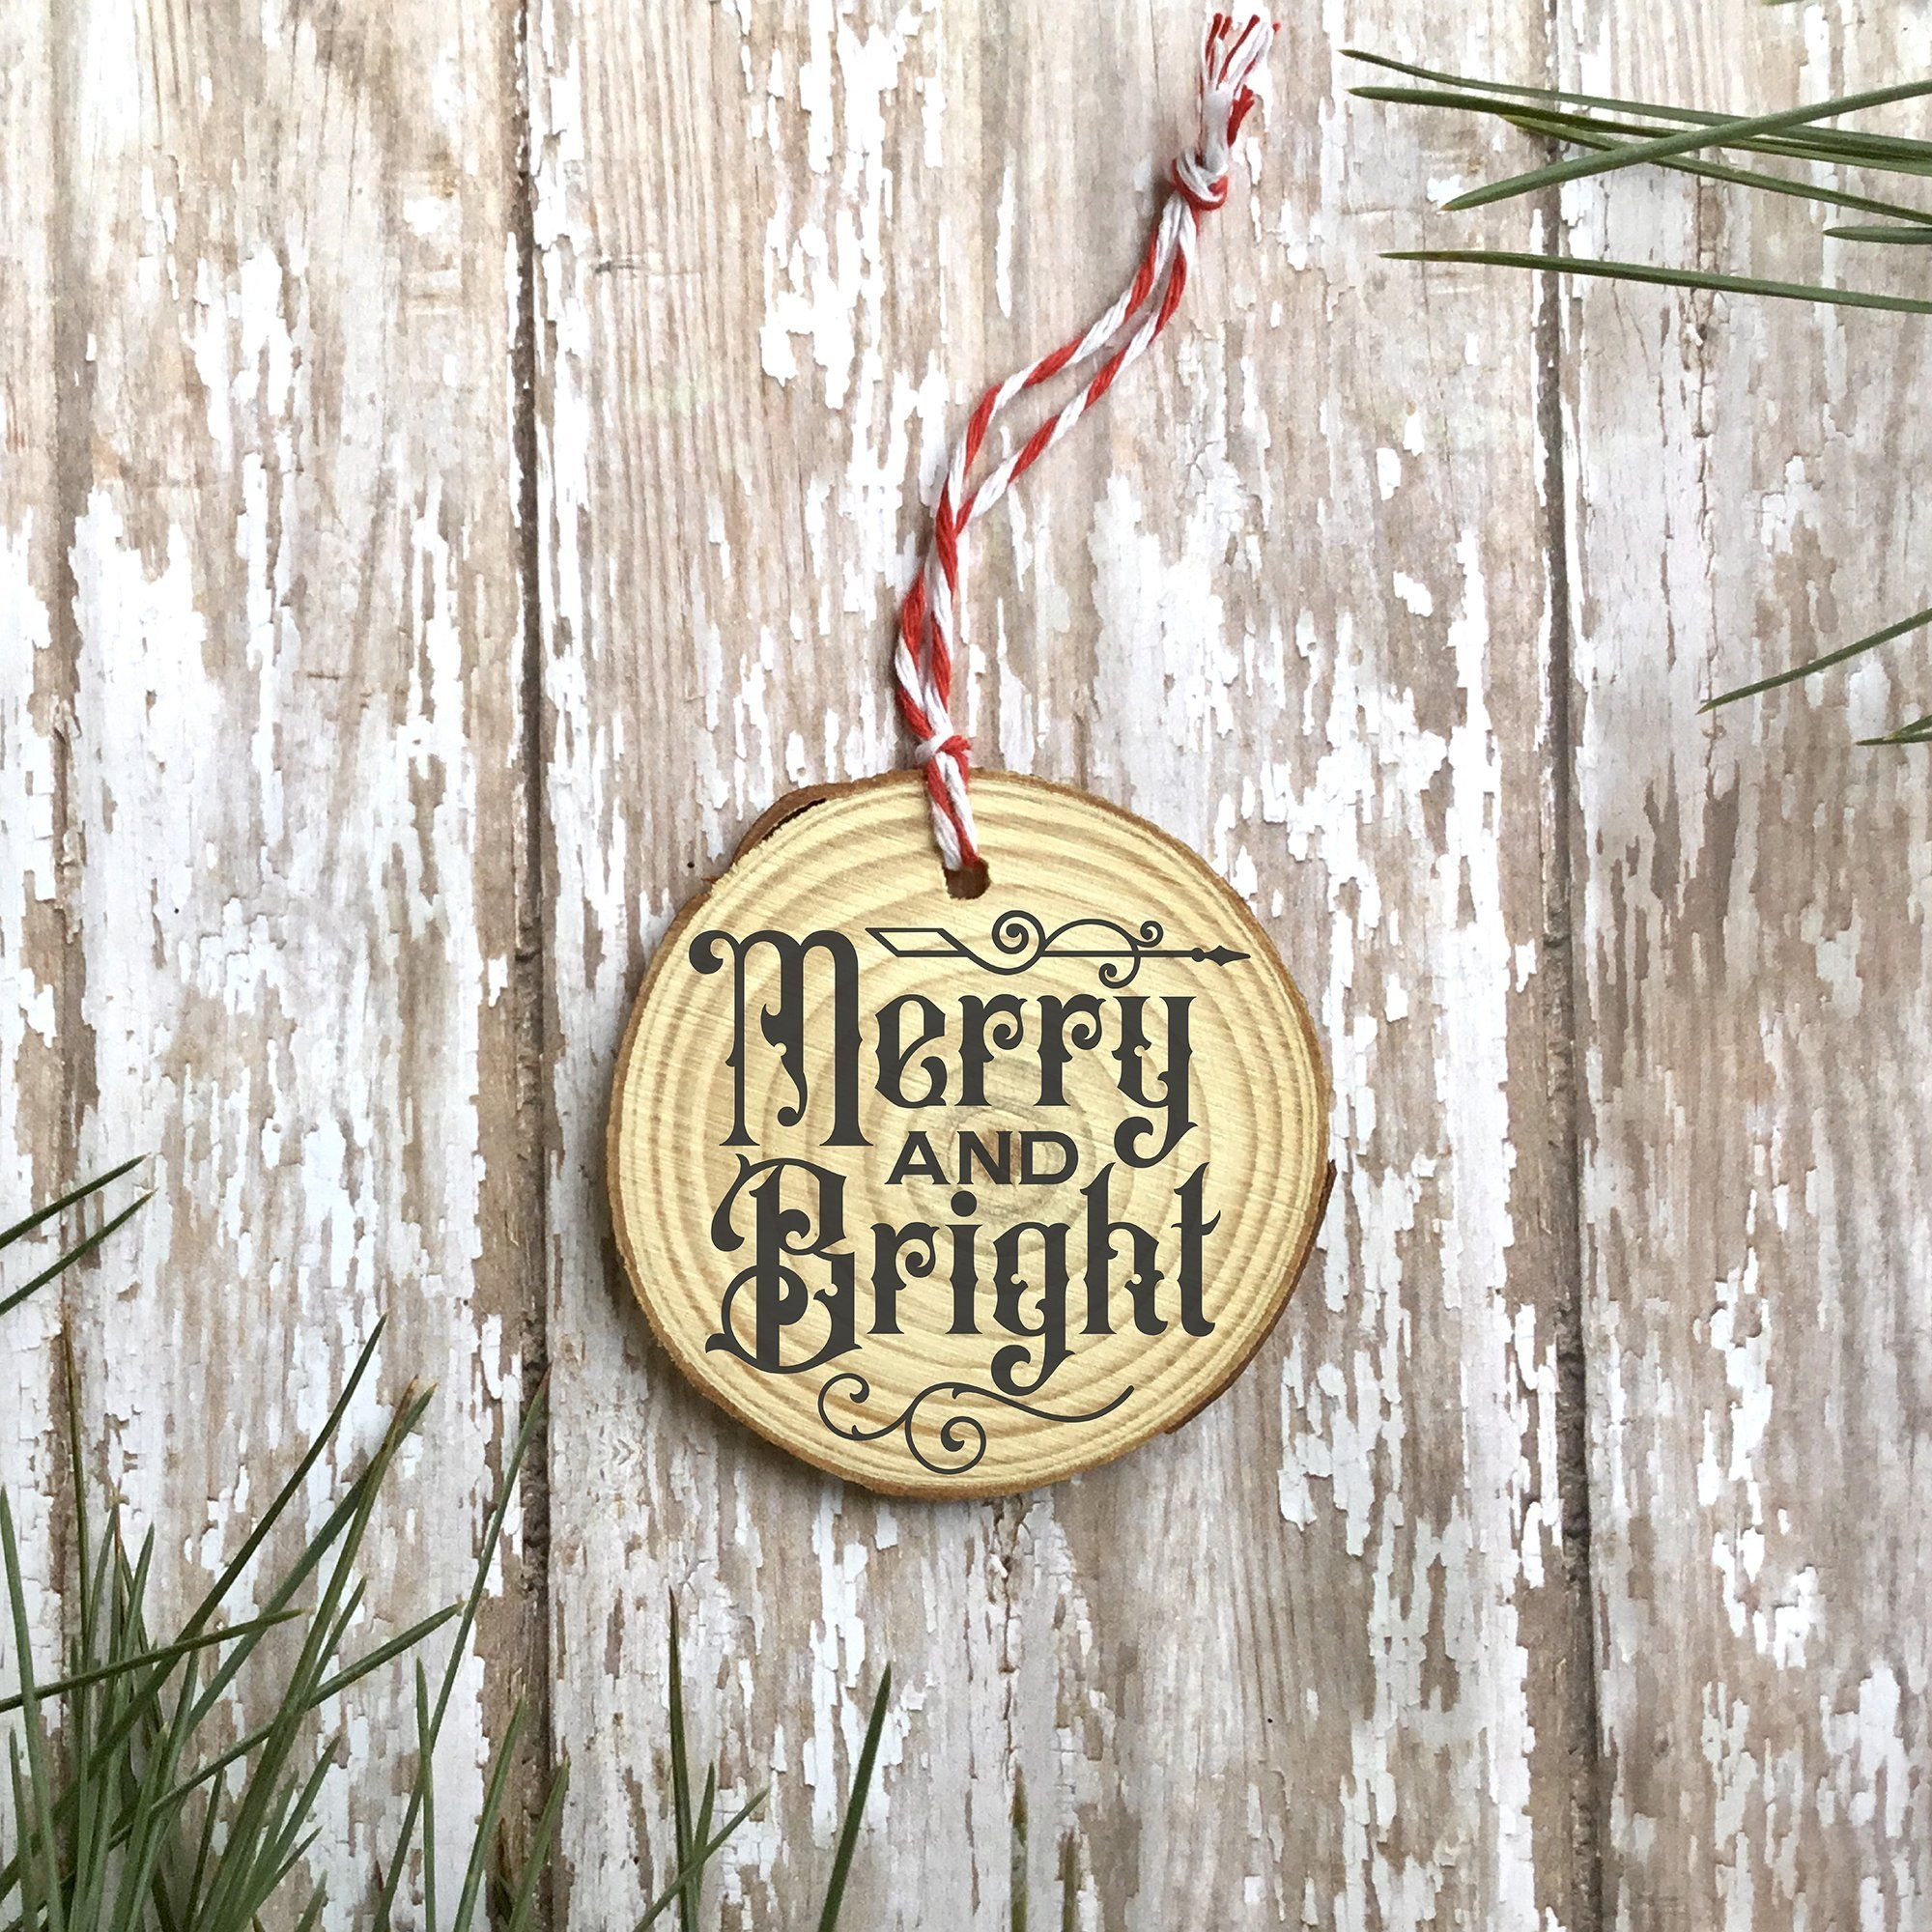 Gothic Christmas Ornament SVG File - Merry and Bright - Commercial Use SVG Files